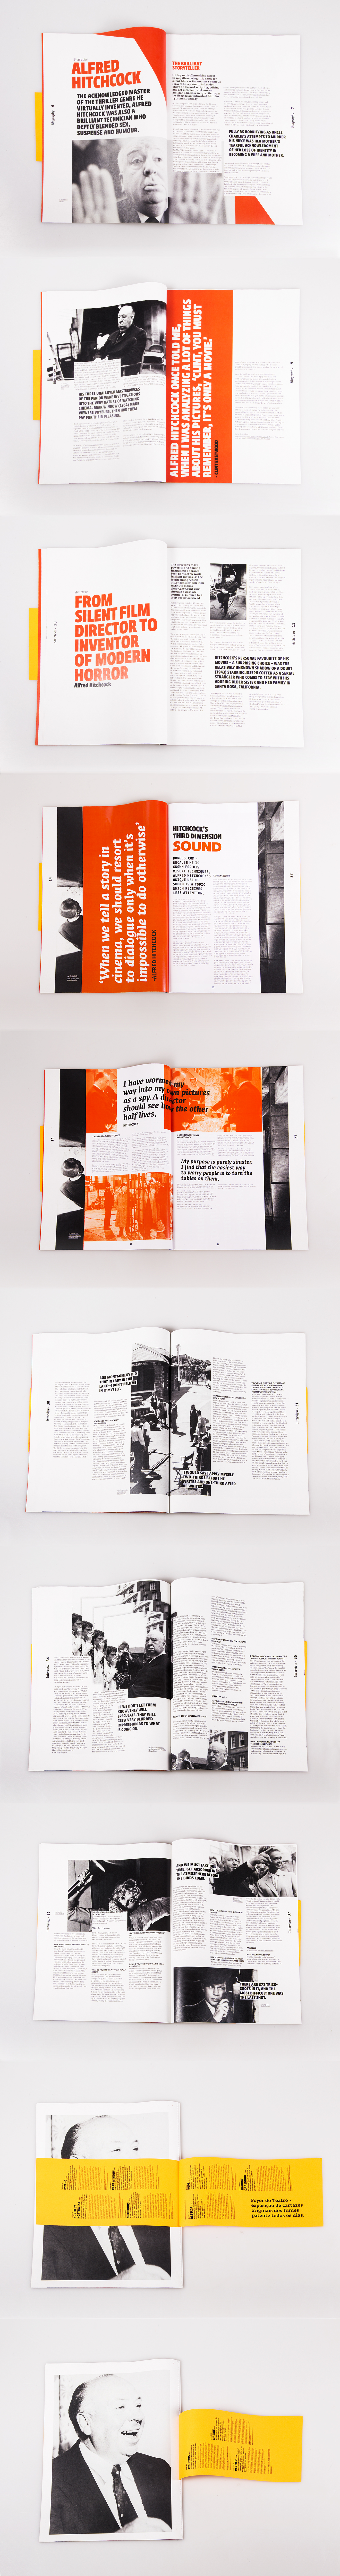 Hitchcock editorial desin by rafael goncalves also best zine images on pinterest design graph rh